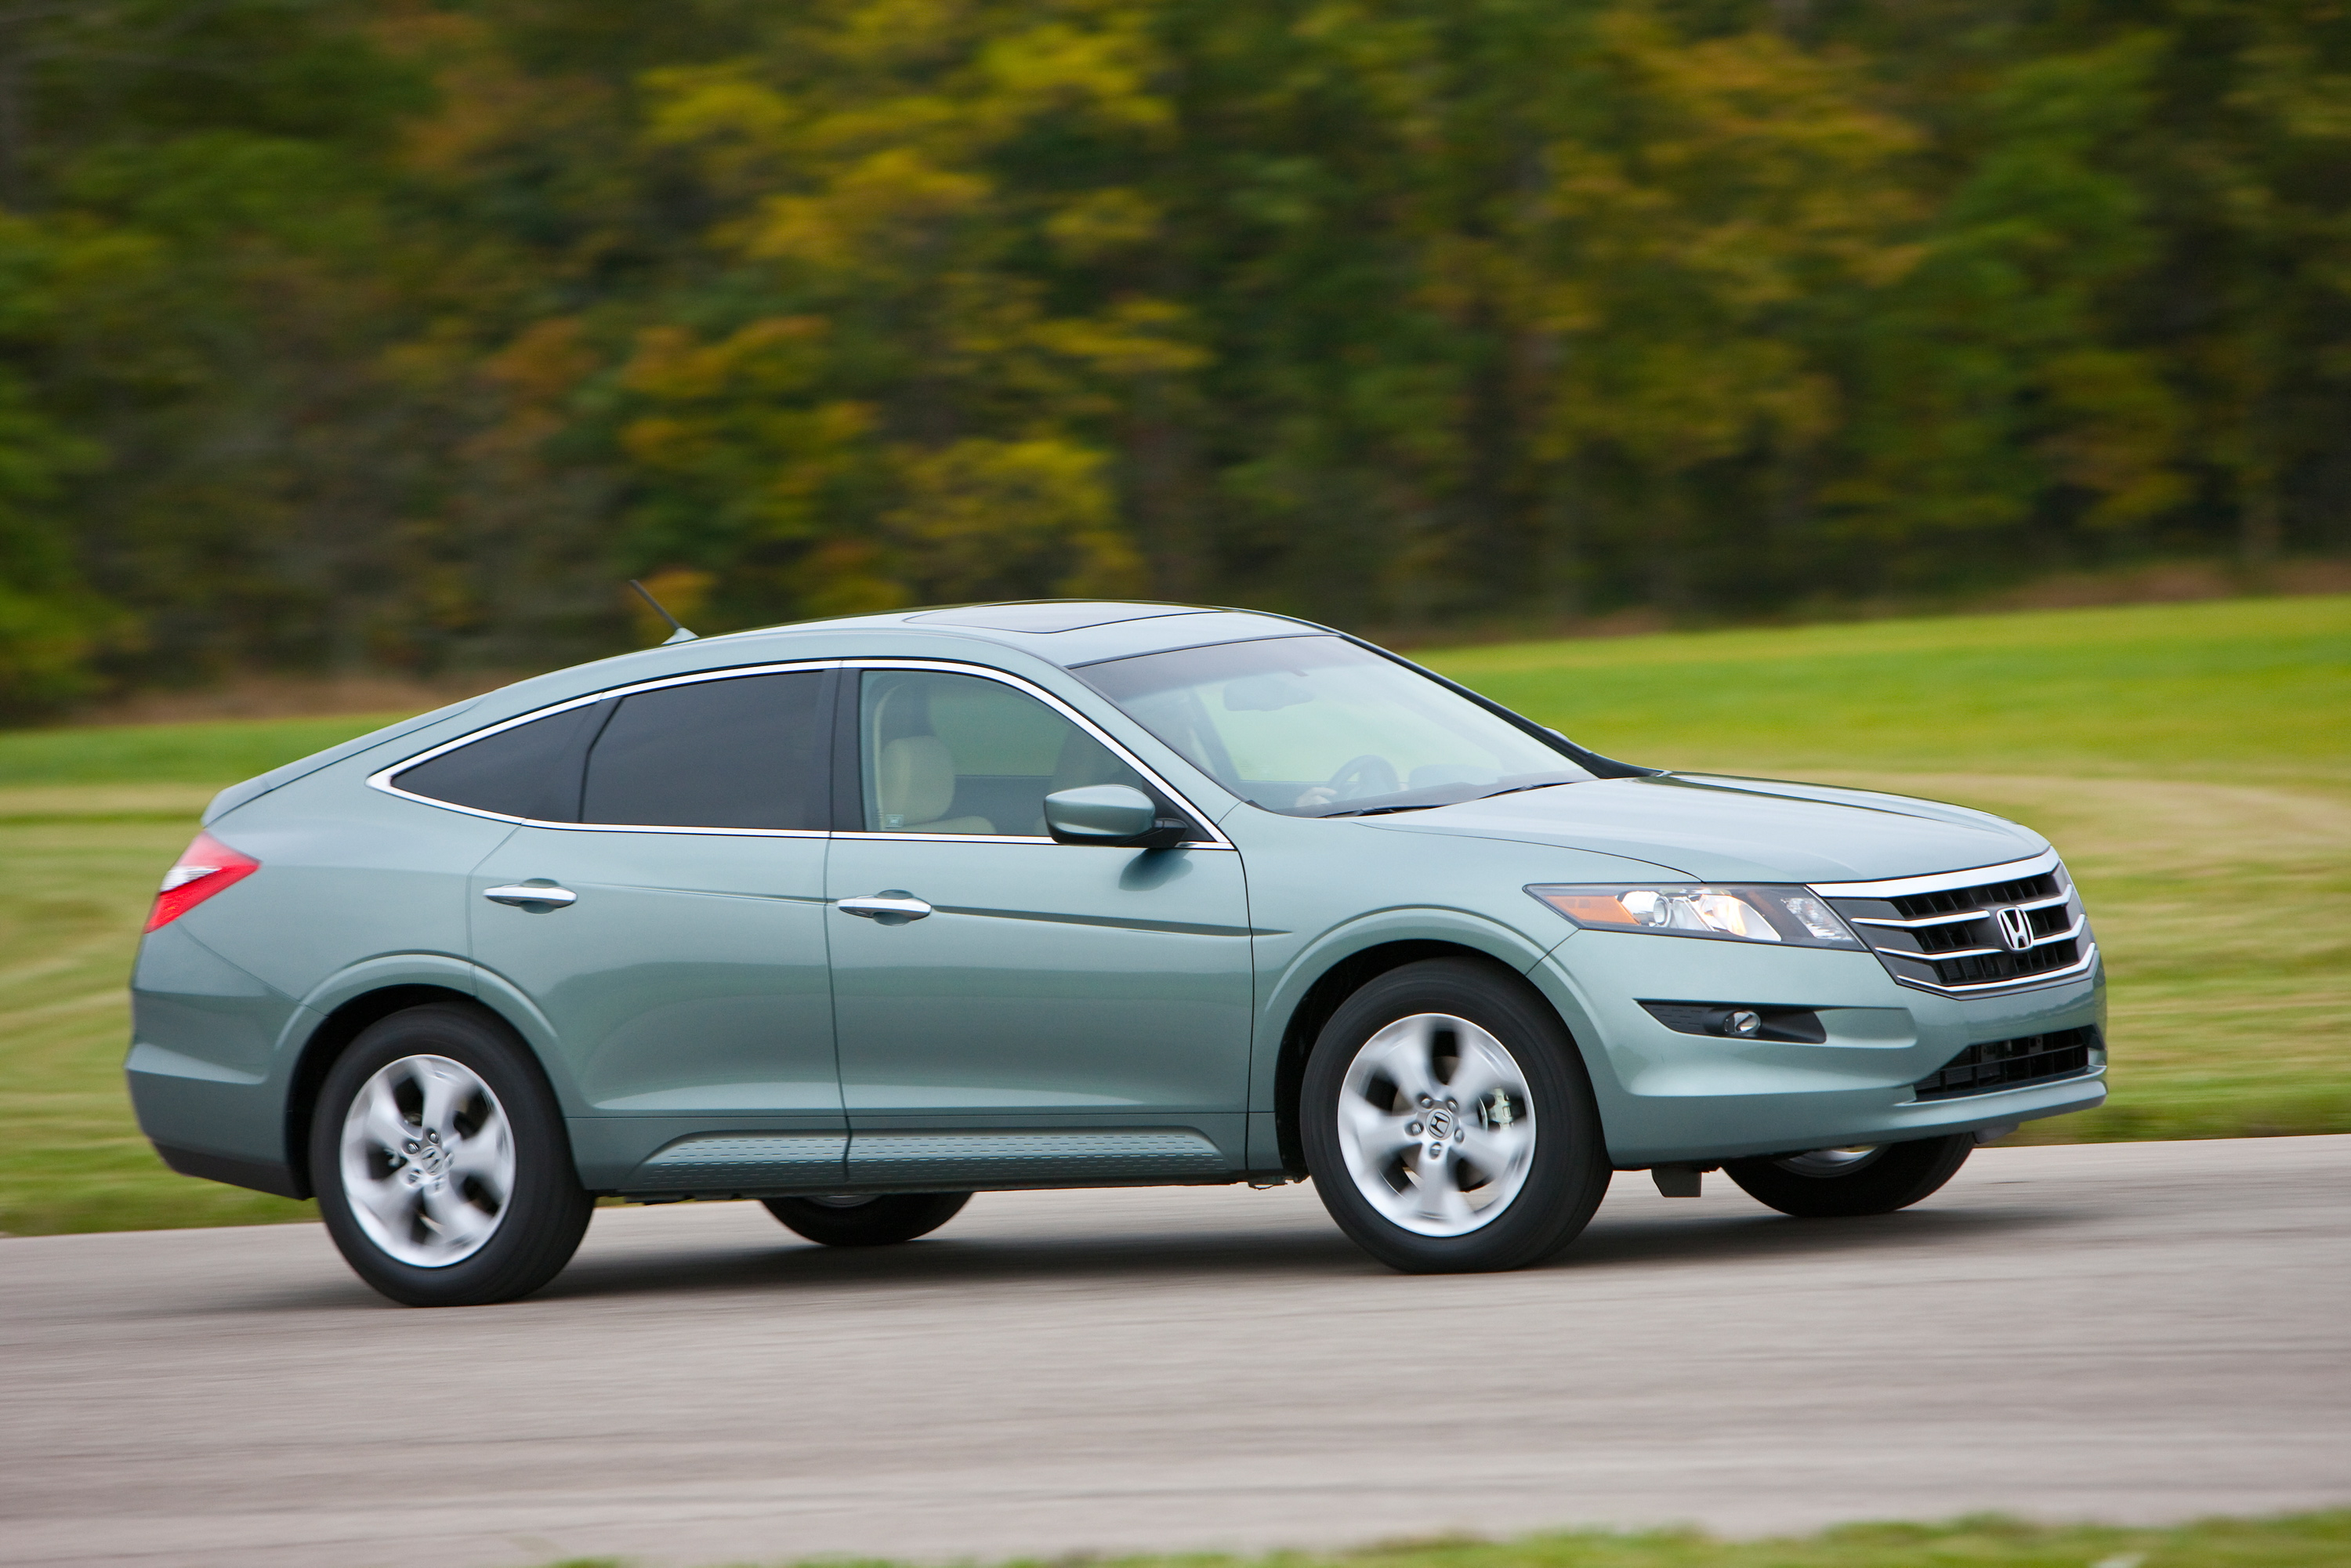 HONDA ACCORD CROSSTOUR MAKES YOU SIT UP! - Image #9